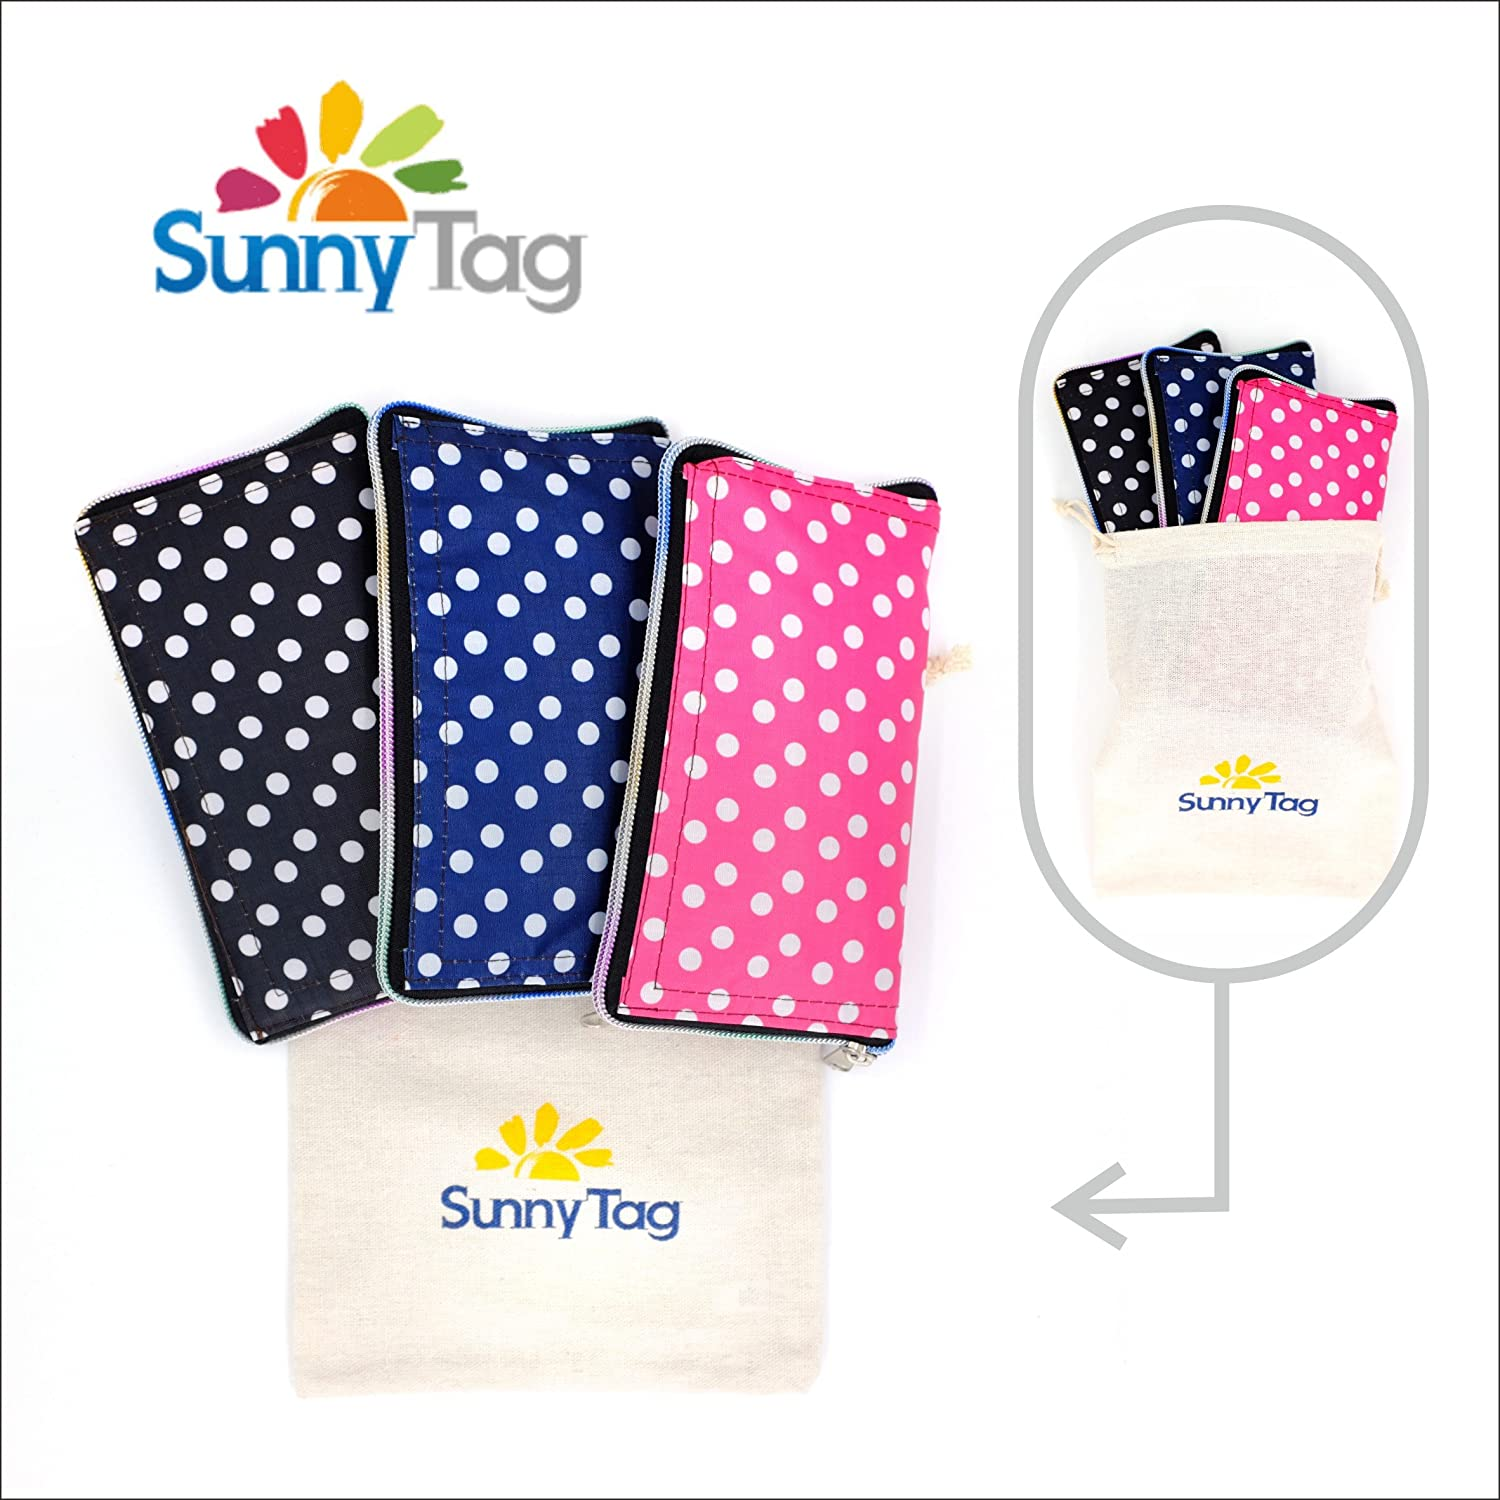 Sunnyタグ折りたたみ式再利用可能なEco Friendly財布スタイルGrocery Shopping旅行バッグトートバッグPack of 3。撥水、洗濯可能、Hold Up To 33ポンドまたは15 kg L ShoppingBag3PC B06XFW7P36 Polka dotts, Black Blue Pink|3 Polka dotts, Black Blue Pink